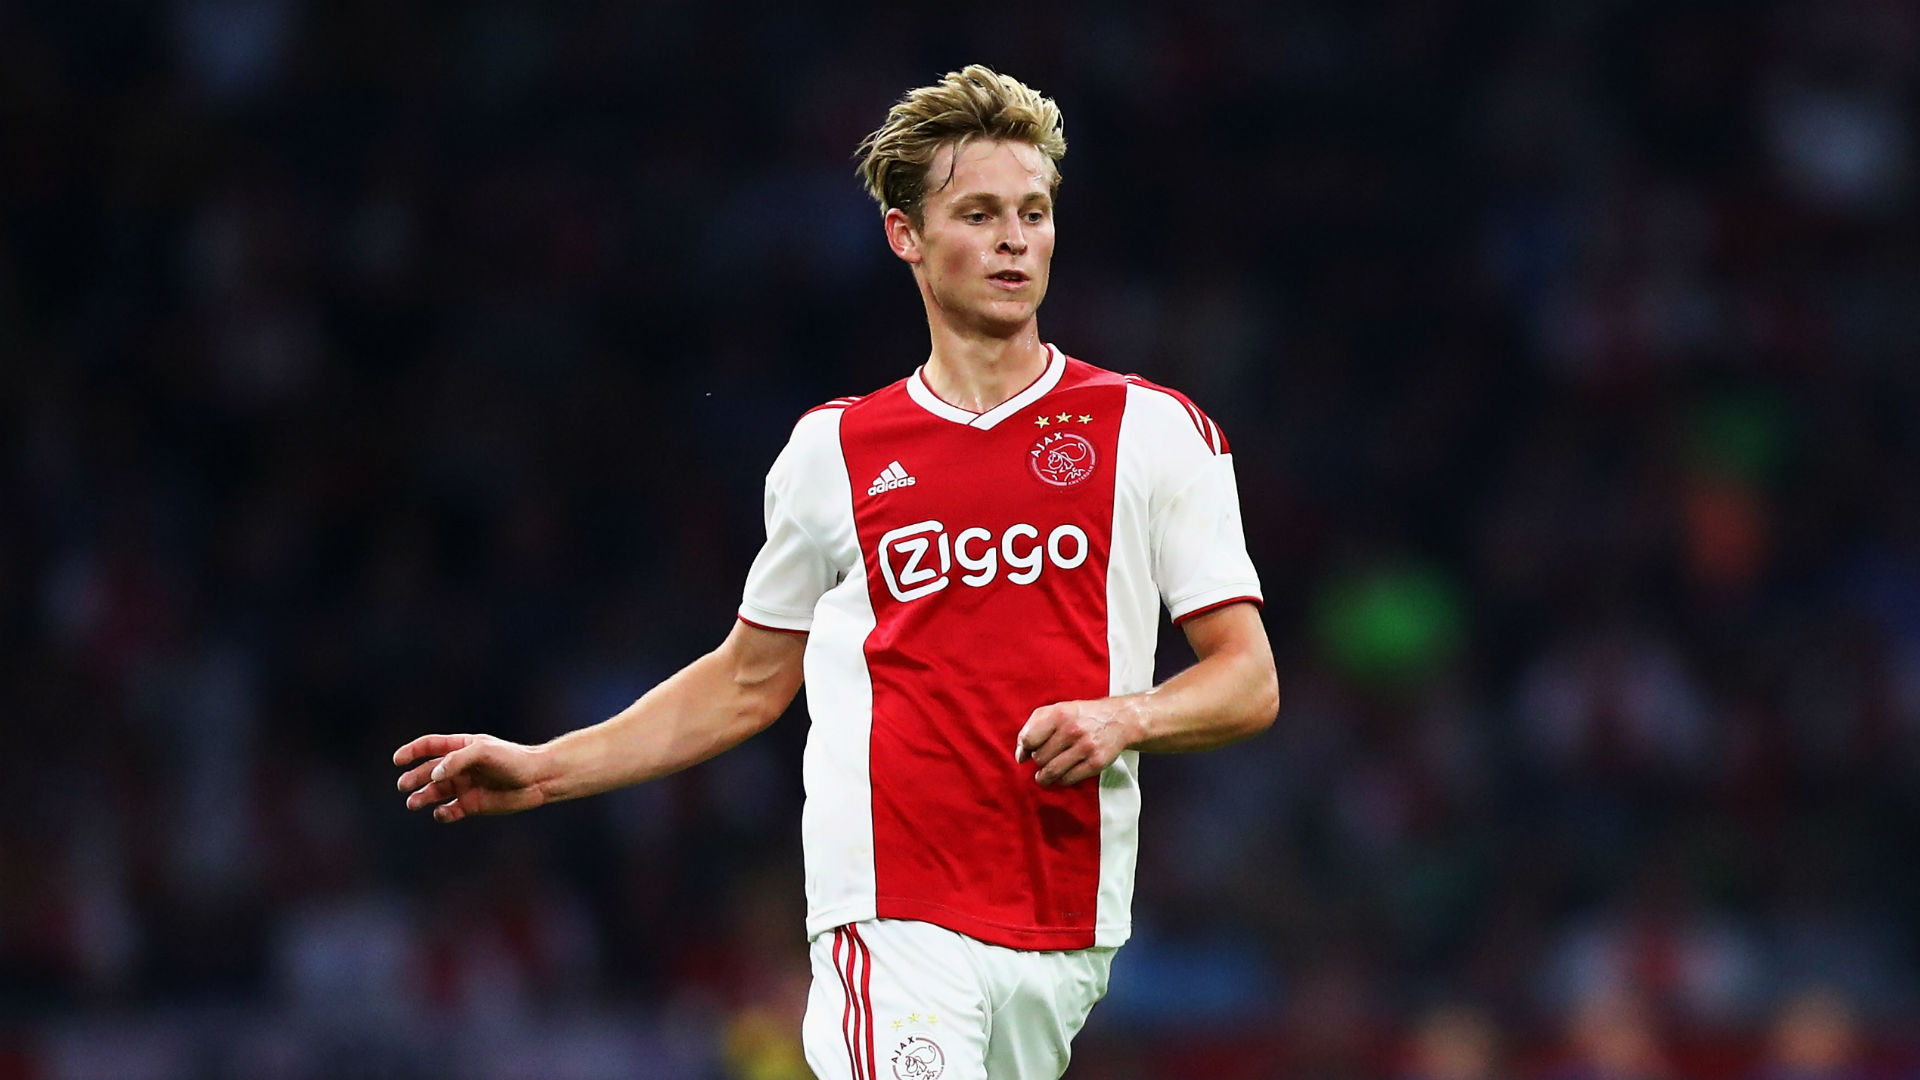 Guardiola: Man City can't compete with Barca or Madrid amid De Jong links